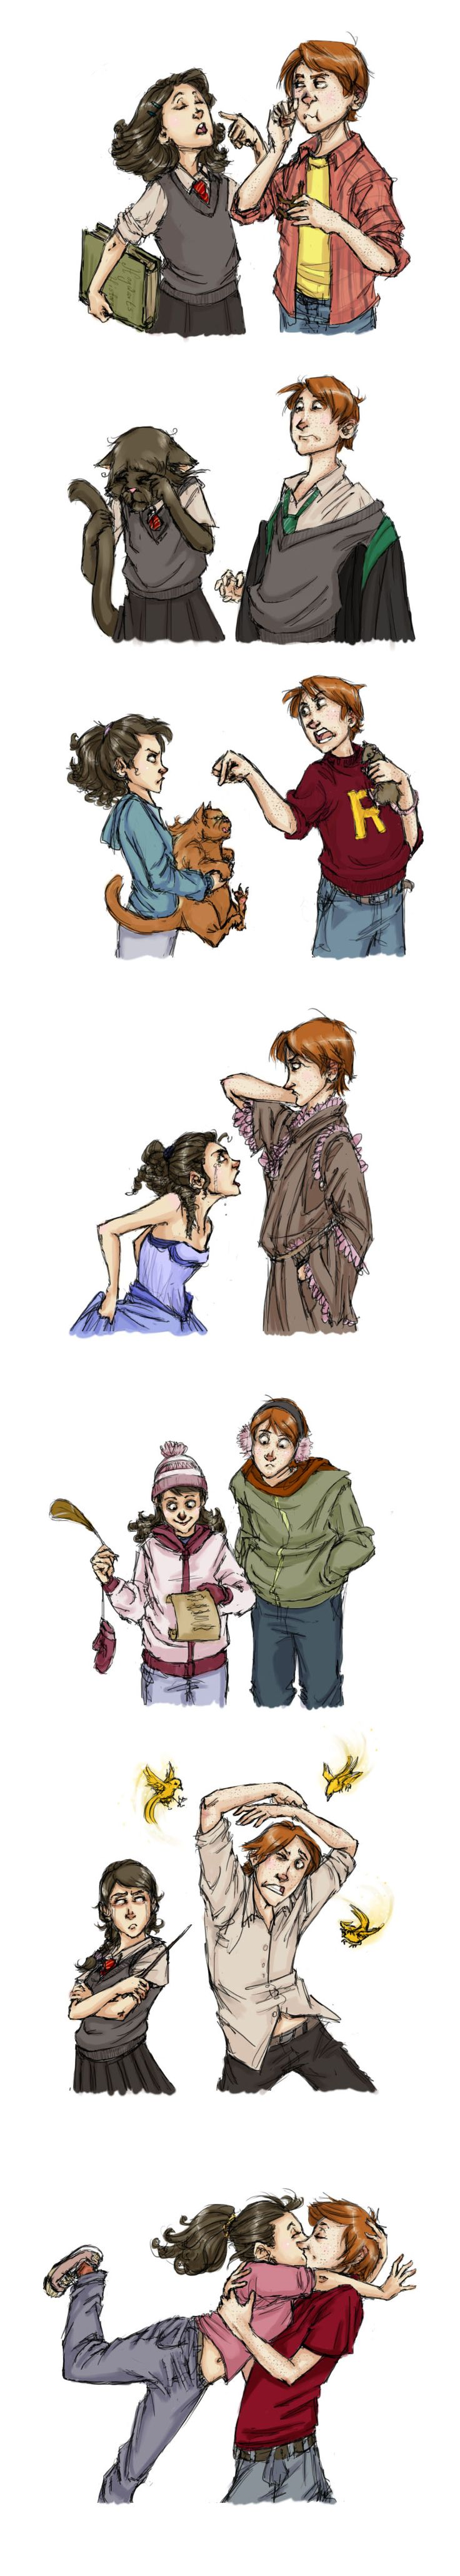 ron and hermione through the years...so cute.